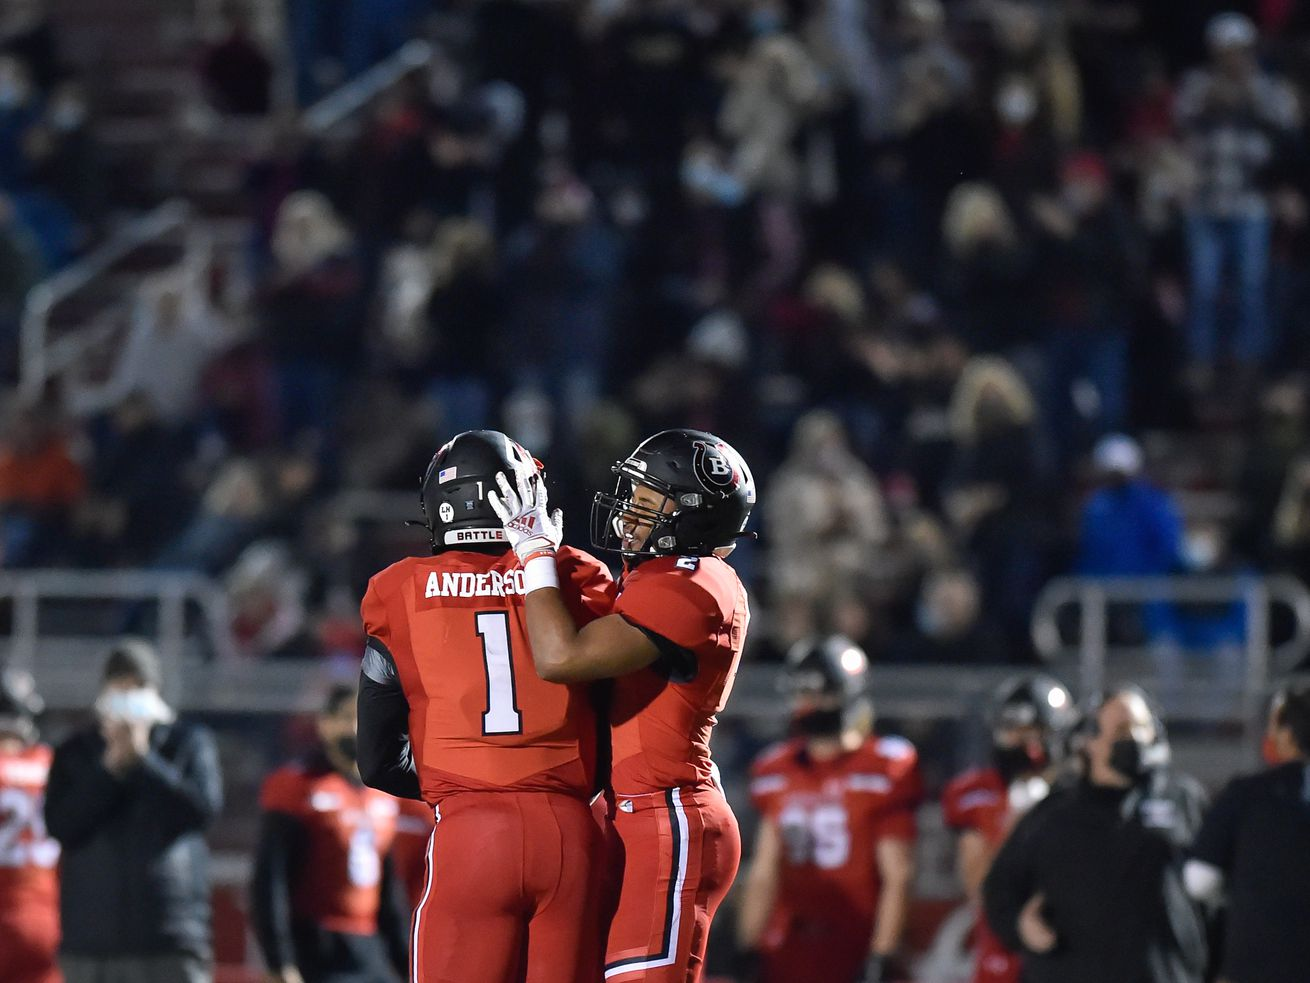 Barrington's Bryan Smith (2) celebrates with Peter Anderson (1) during the game against Fremd.